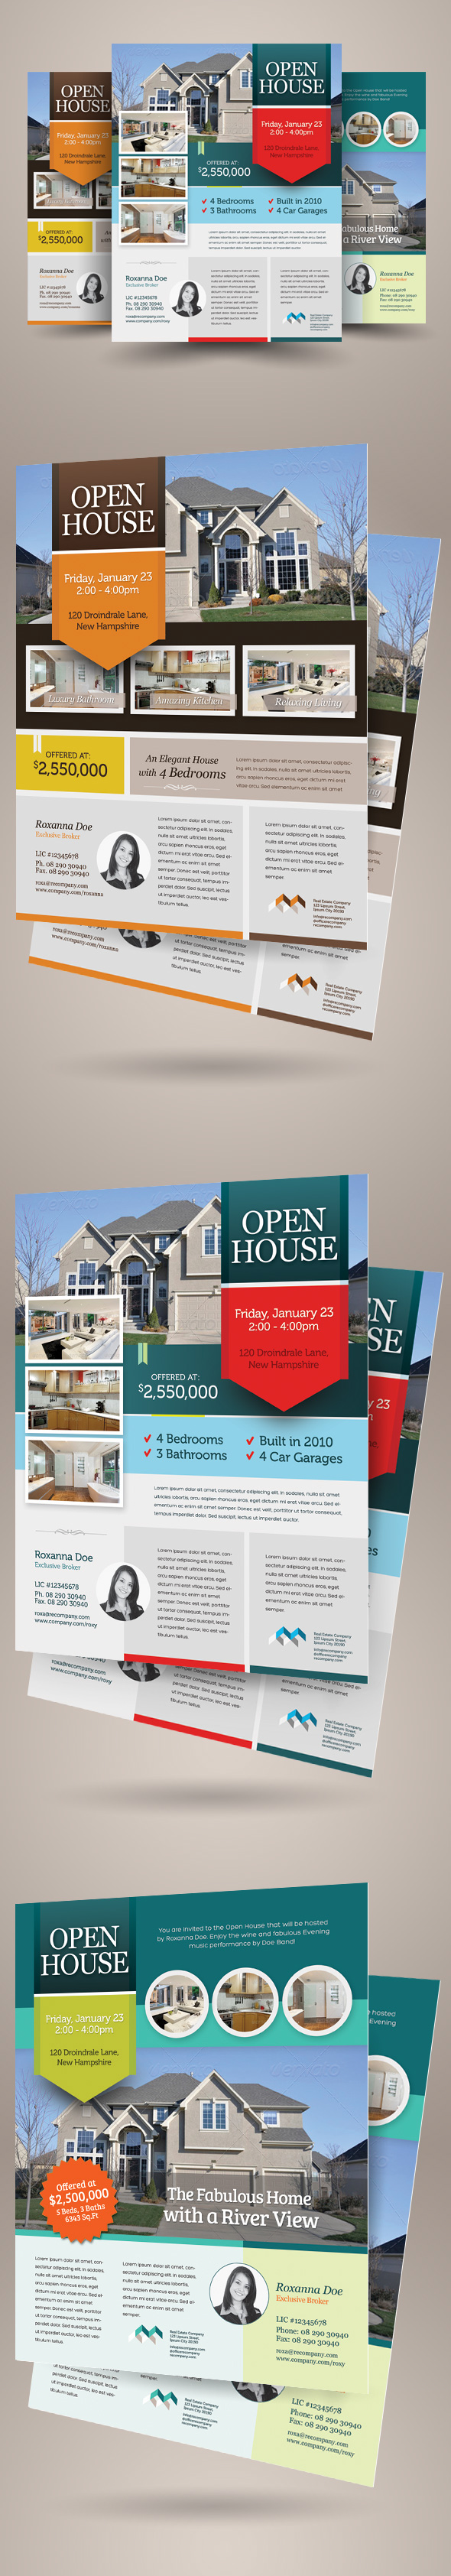 Real Estate Open House Flyers on Behance – Real Estate Open House Flyer Template